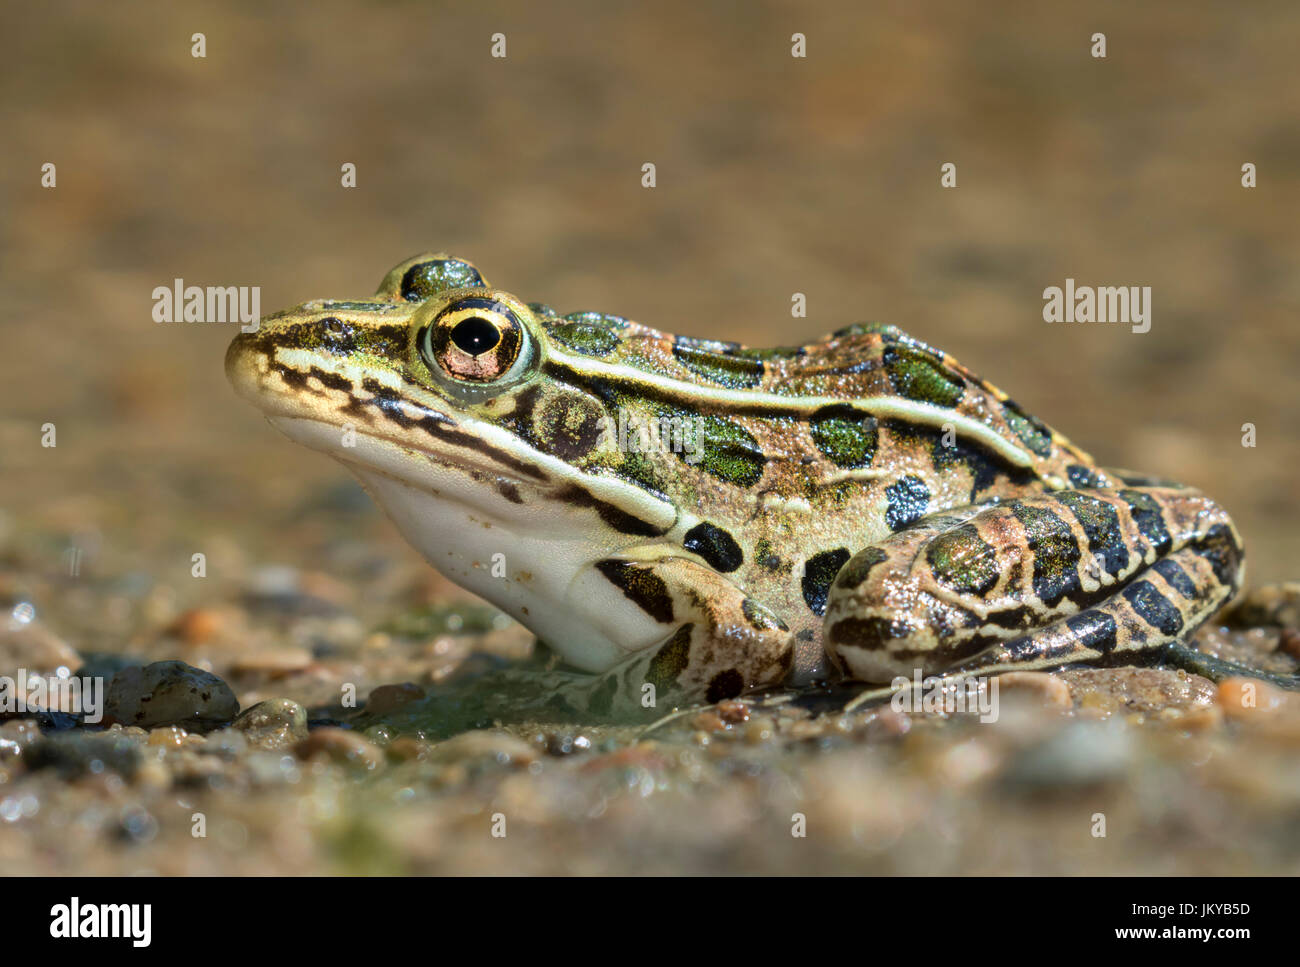 Northern leopard frog (Lithobates pipiens) near water stream, Ledges State Park, Iowa, USA. - Stock Image